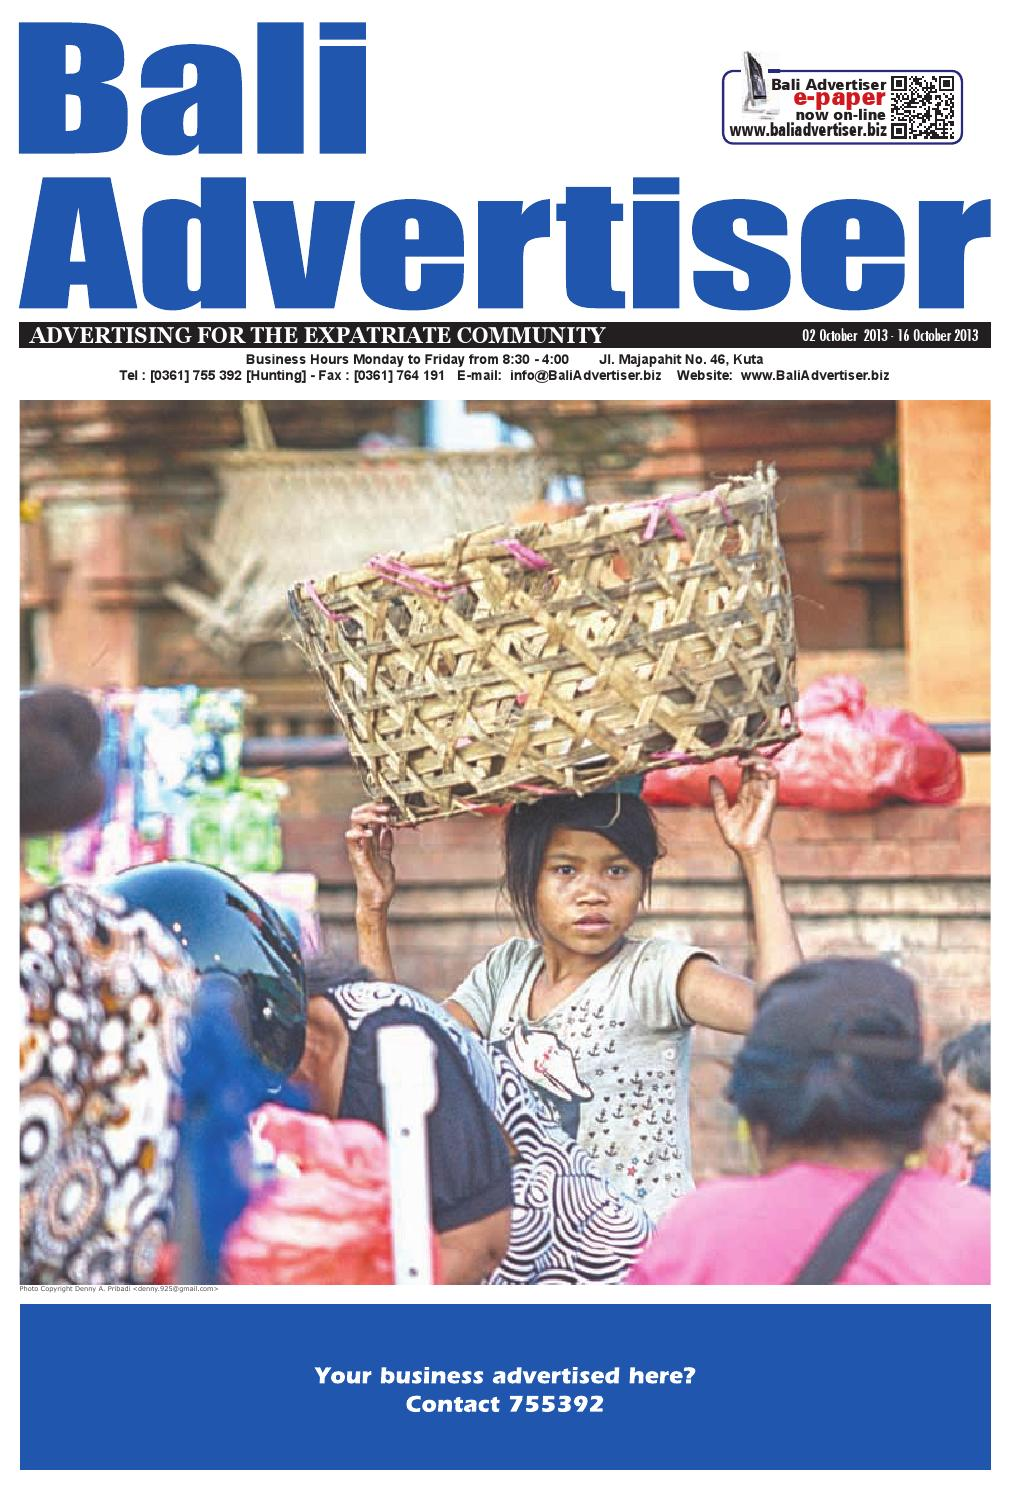 Ba 02 October 2013 By Bali Advertiser Issuu Ares Camel Nokha Sneakers Women Cokelat Muda 39